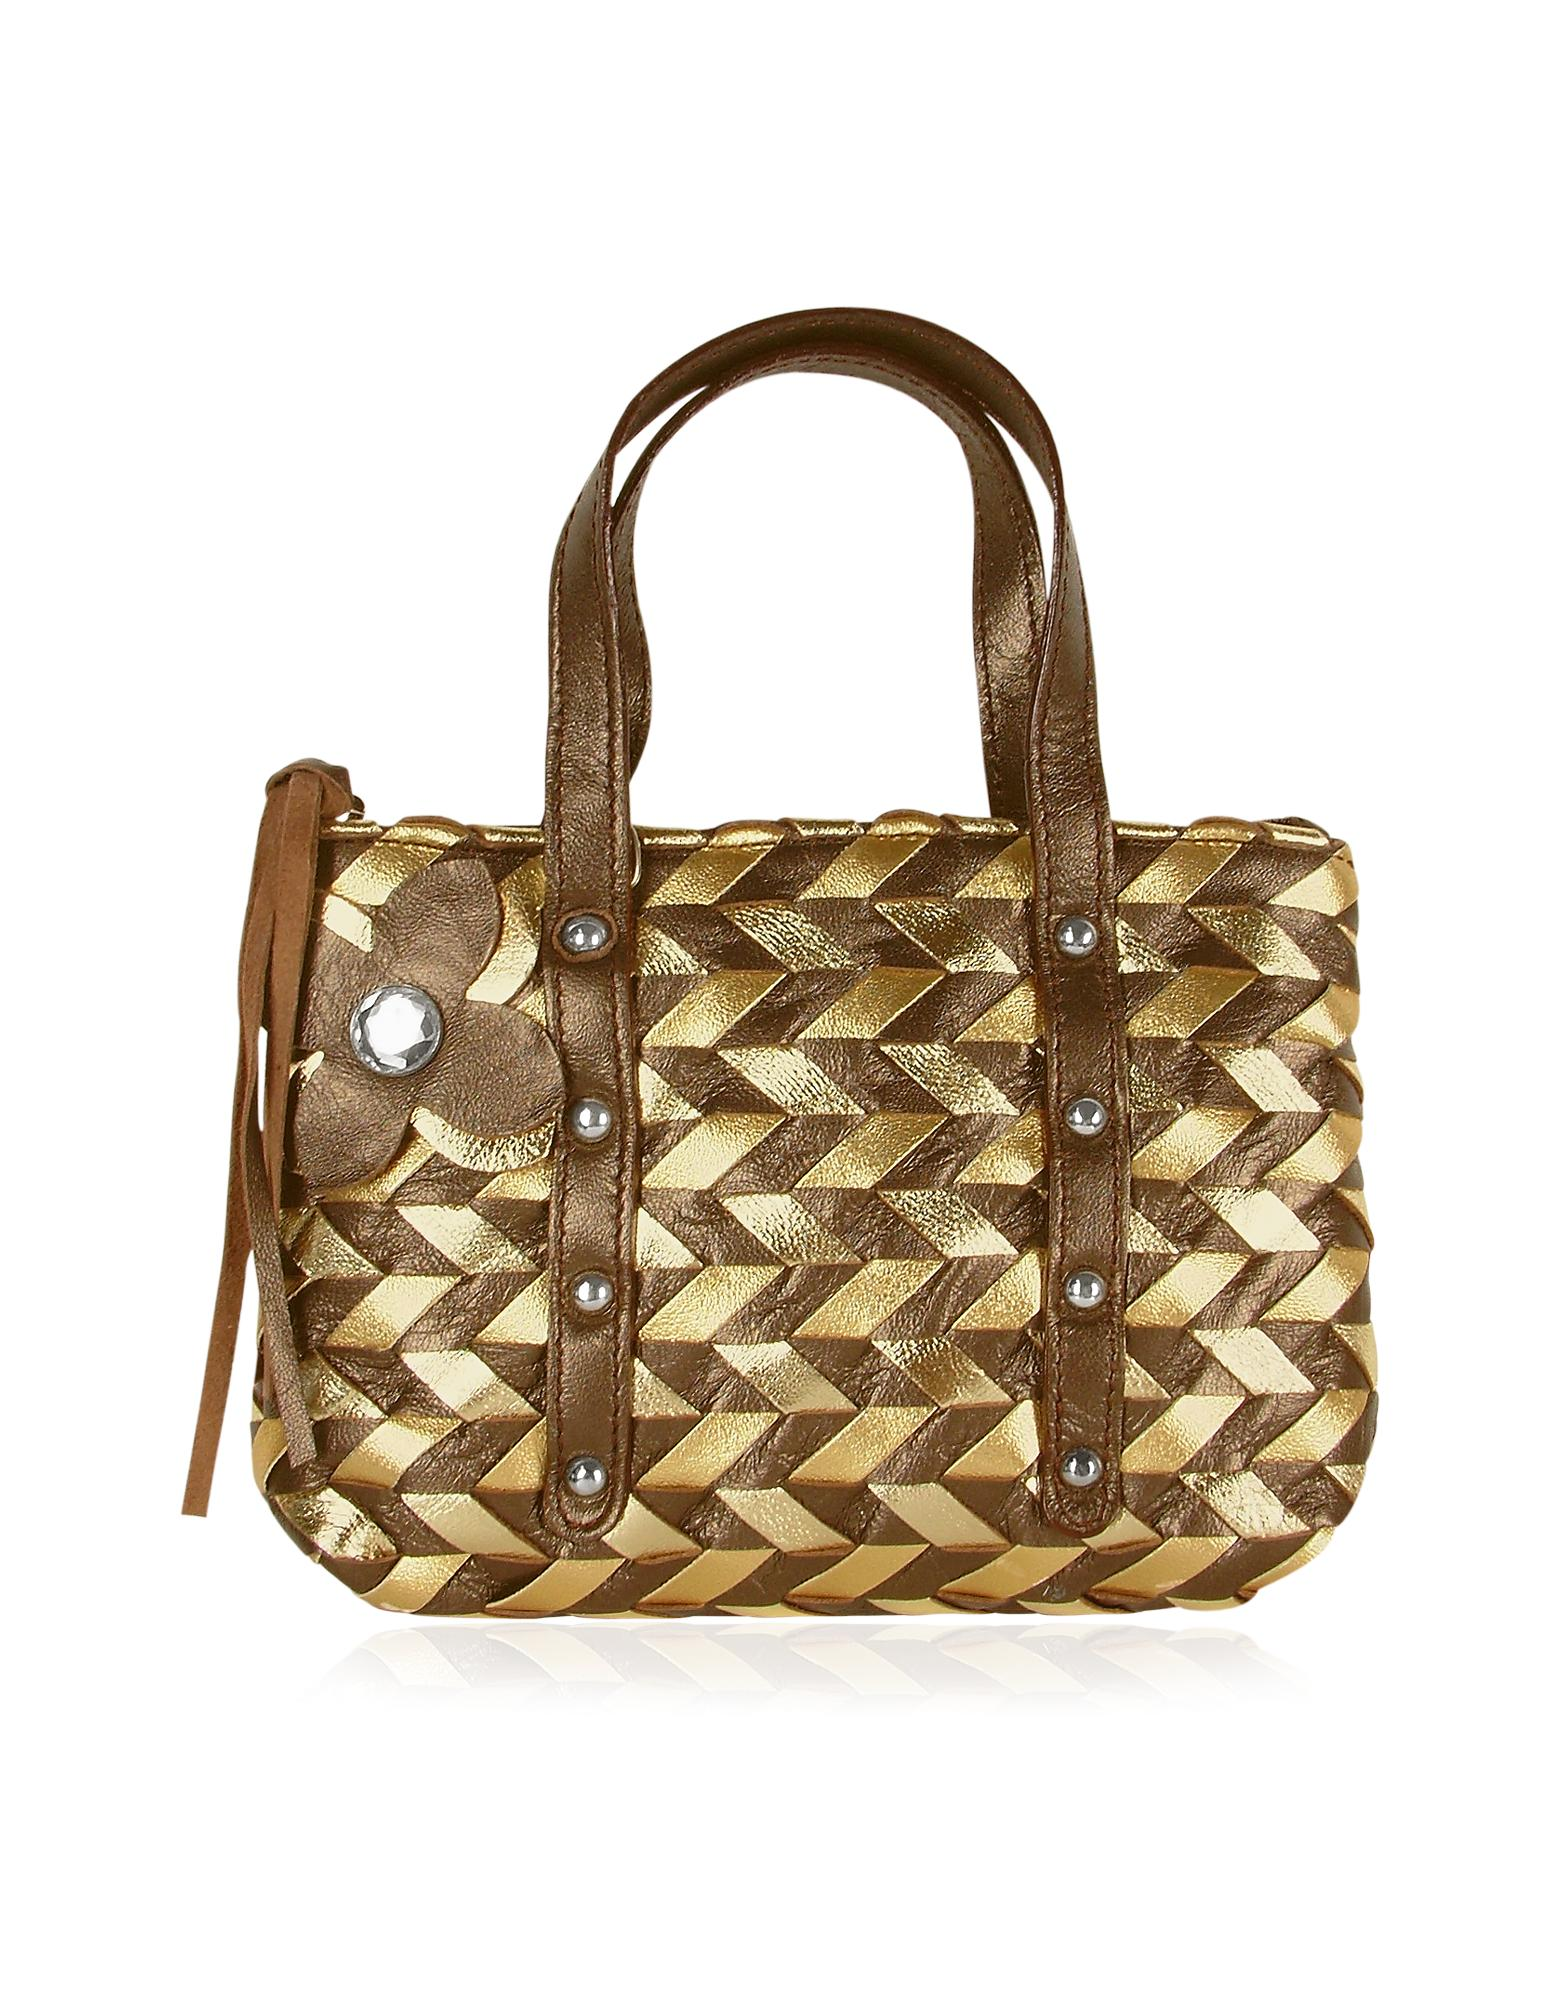 Fontanelli  Brown & Gold Italian Woven Leather Mini Bag